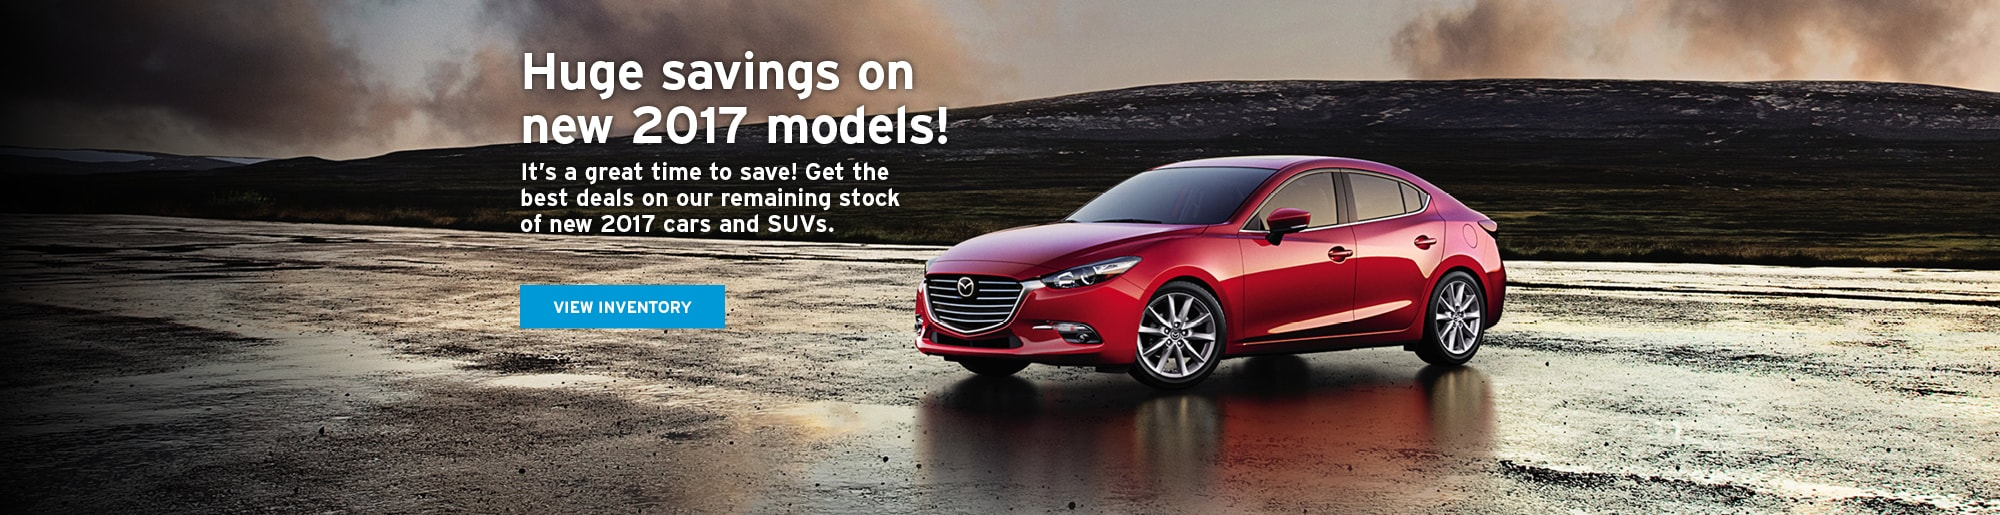 specials mazda tax ma in and offers miles year title cash reg new lease acq rebates all doc loyalty financing down are fees extra trade conquest leases includes per or vehicle deals